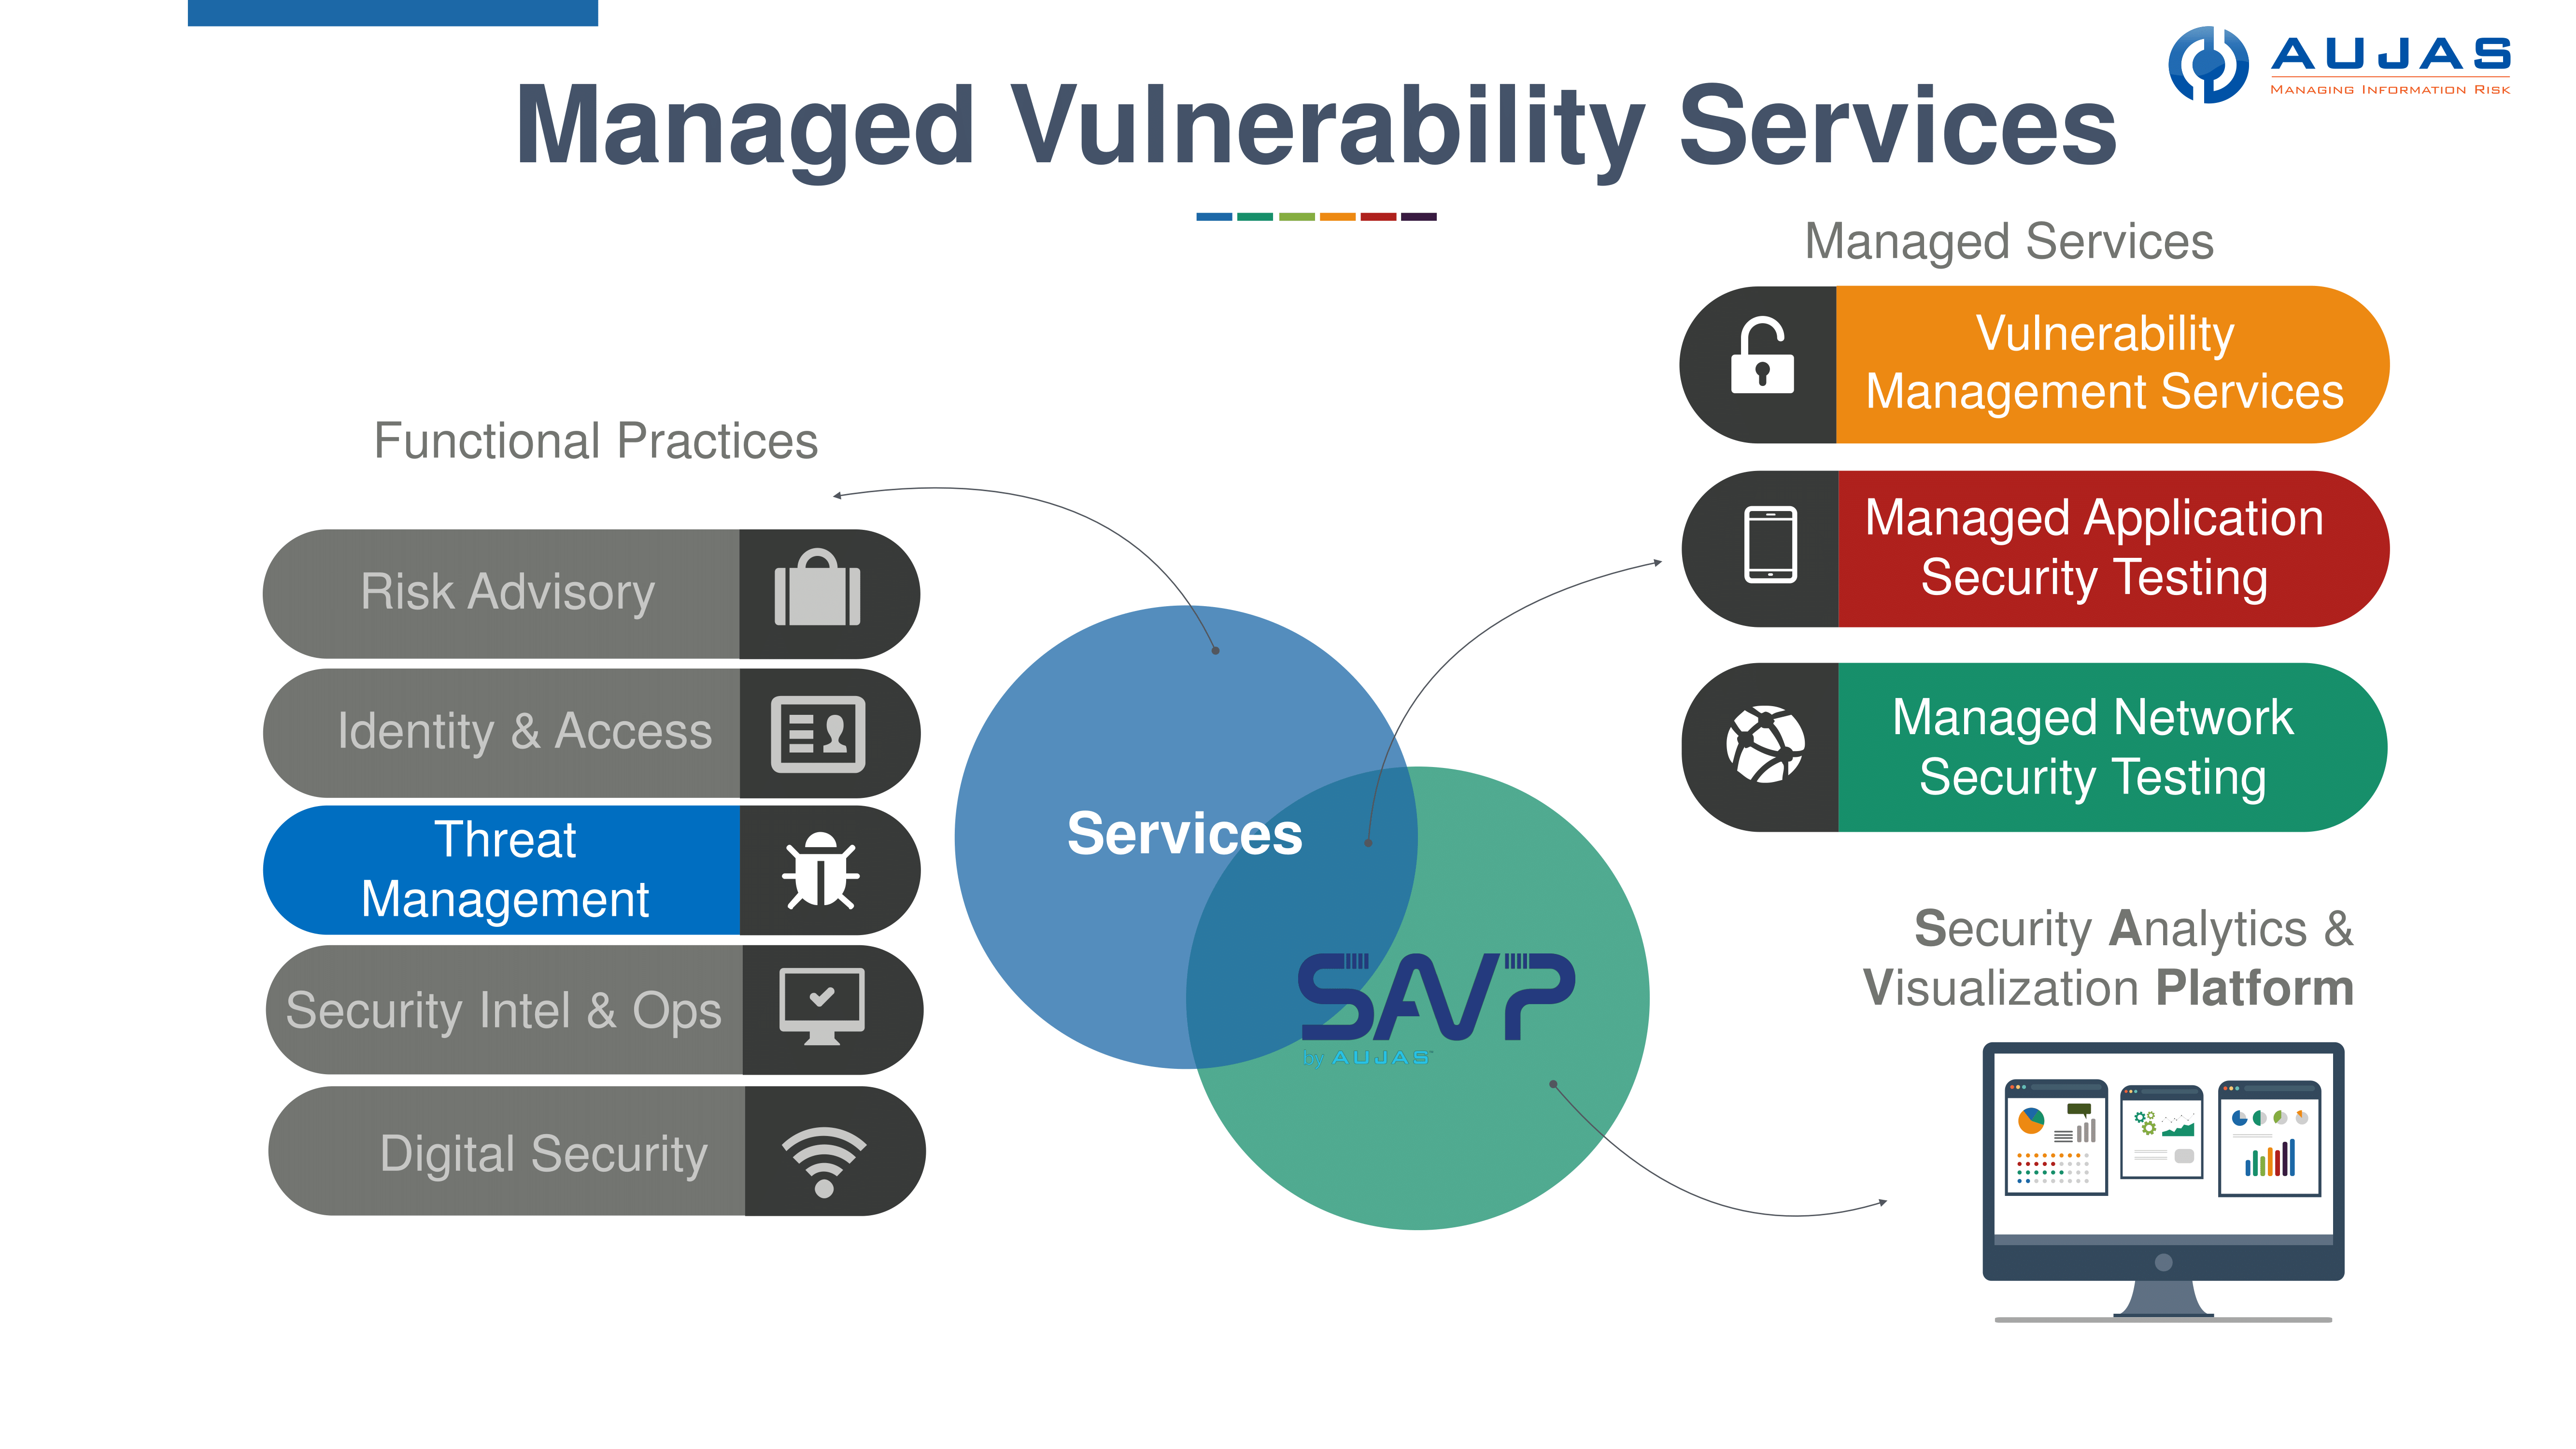 Managed Security Services for Vulnerability Management, VAPT, Application Security Testing, Network Security Testing